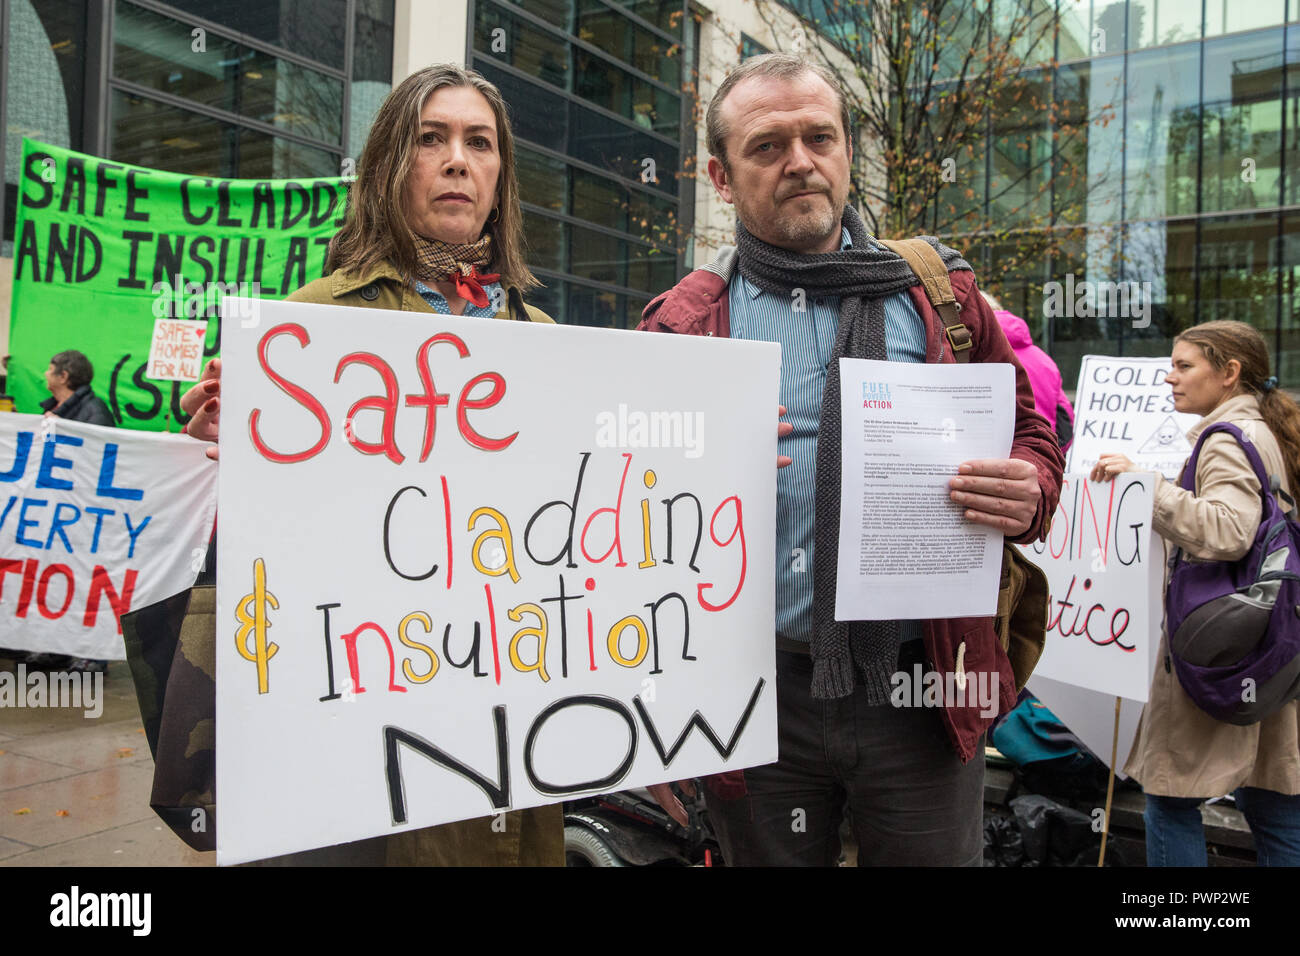 London, UK. 17th October, 2018. Leaseholder Beverley Reynolds-Logue from Manchester and Phil Murphy of Fuel Poverty Action prepare to present a letter to the Secretary of State for Housing, Communities and Local Government to demand urgent action and funding to protect tower block residents both from fire and from cold. The 140 signatories of the letter include MPs, councillors, trade union bodies and campaign groups focused on housing, poverty, discrimination, health, energy and climate. Credit: Mark Kerrison/Alamy Live News - Stock Image